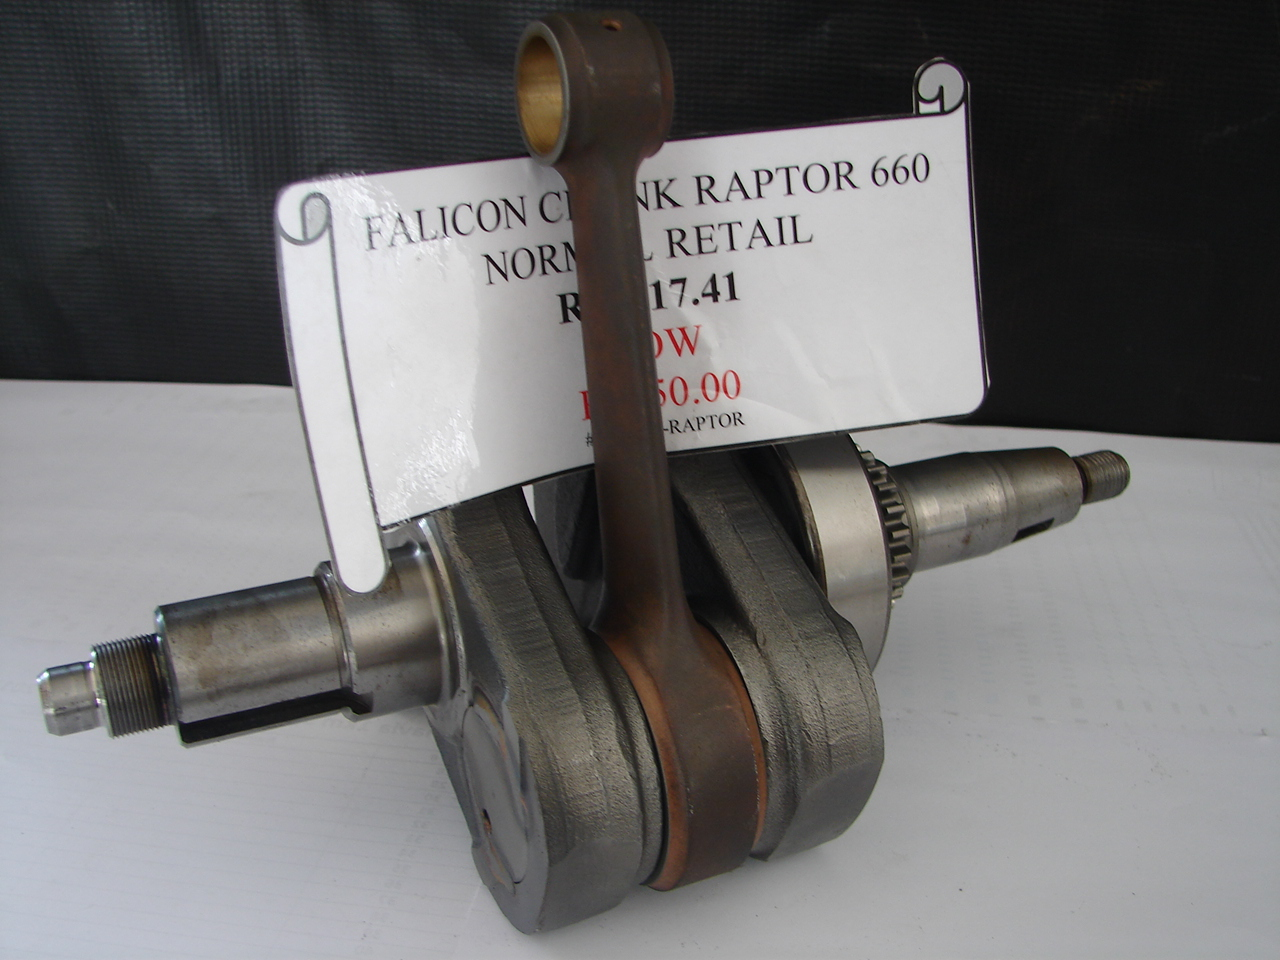 FALICON CRANK for the Raptor 660